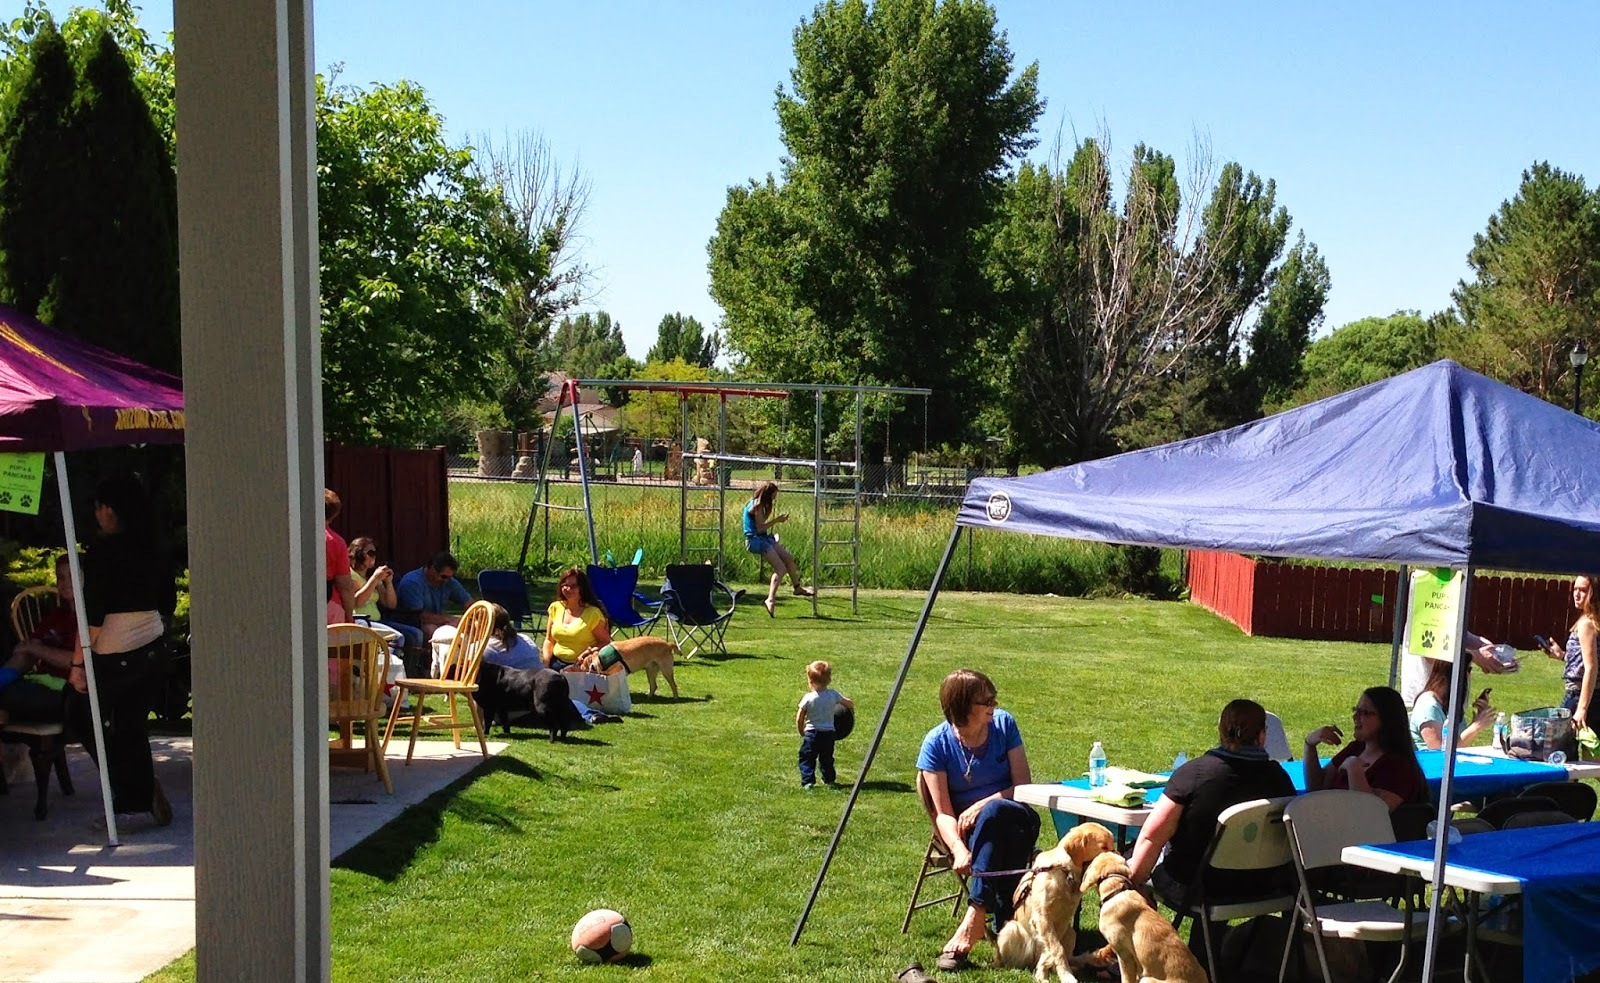 Tables and tents set up in a beautiful green backyard on a sunny day with people and dogs hanging out in the shade.